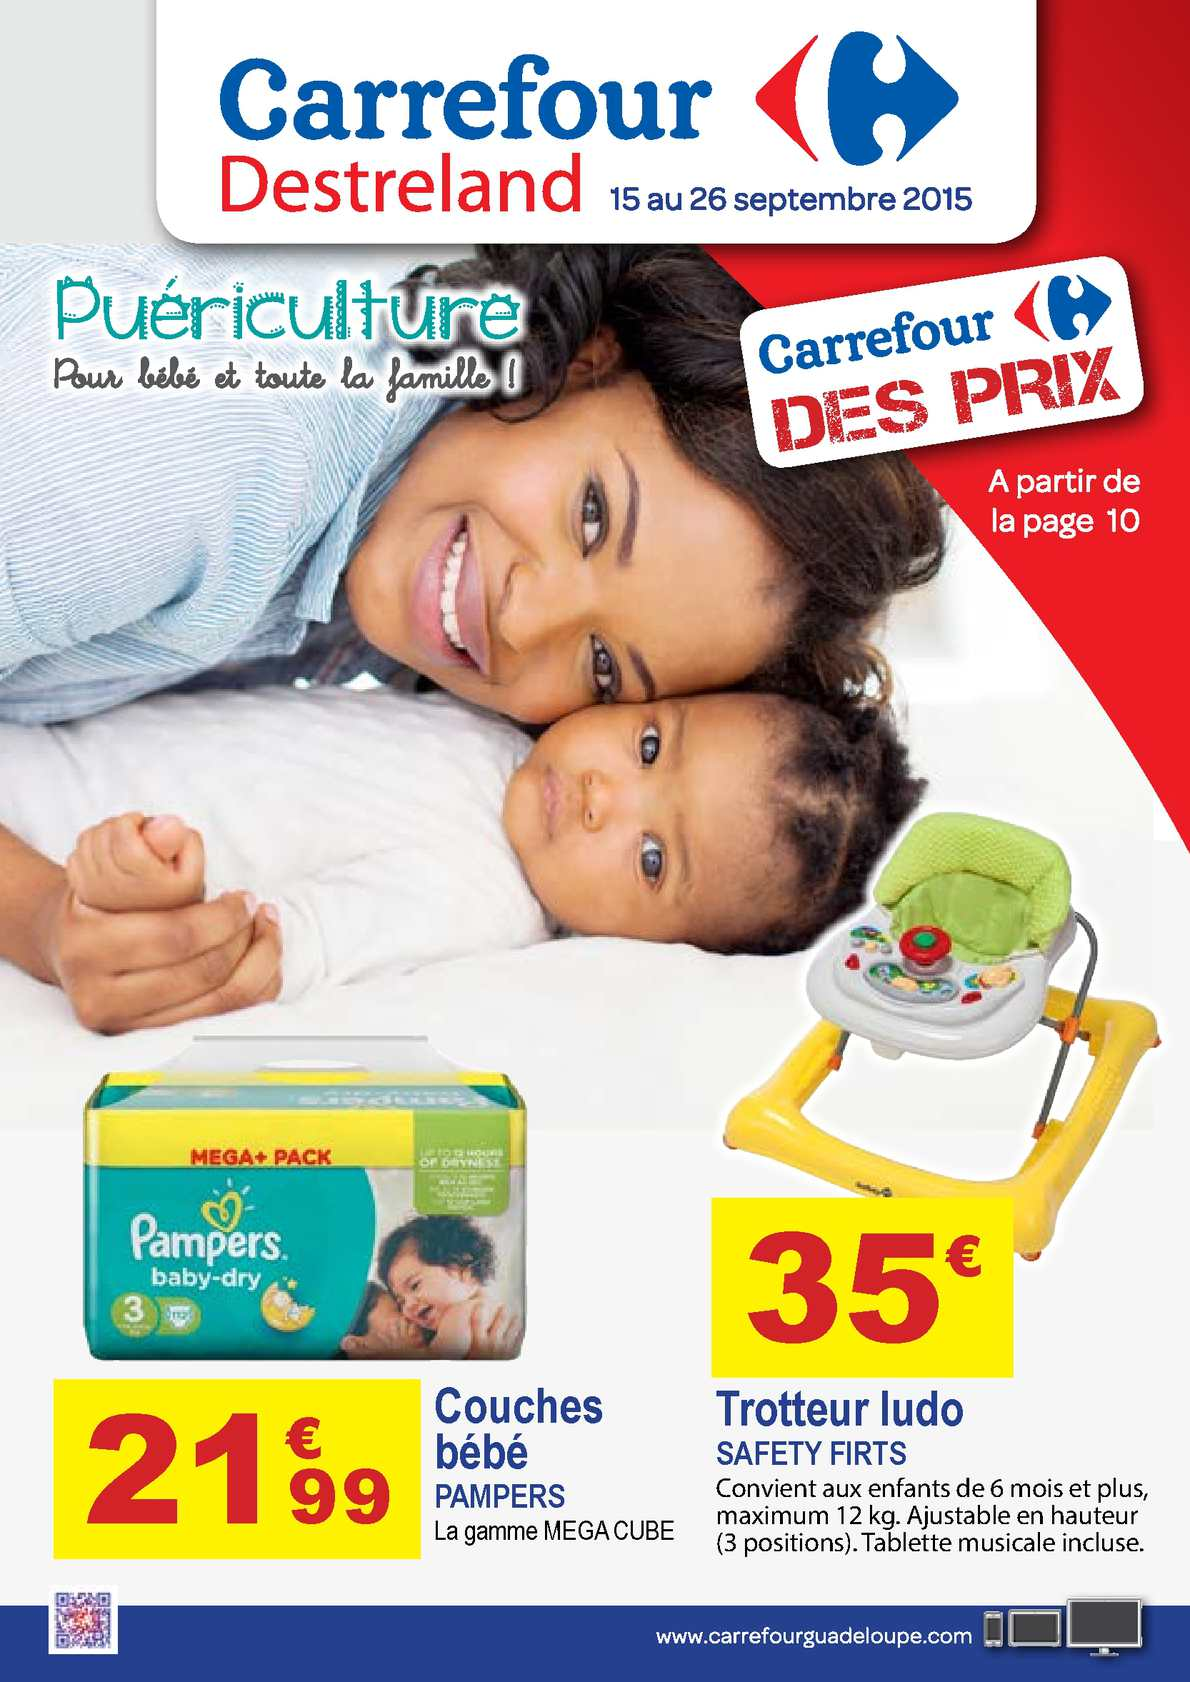 tour de lit bébé minnie carrefour Calaméo   CARREFOUR CATALOGUE PUERICULTURE tour de lit bébé minnie carrefour